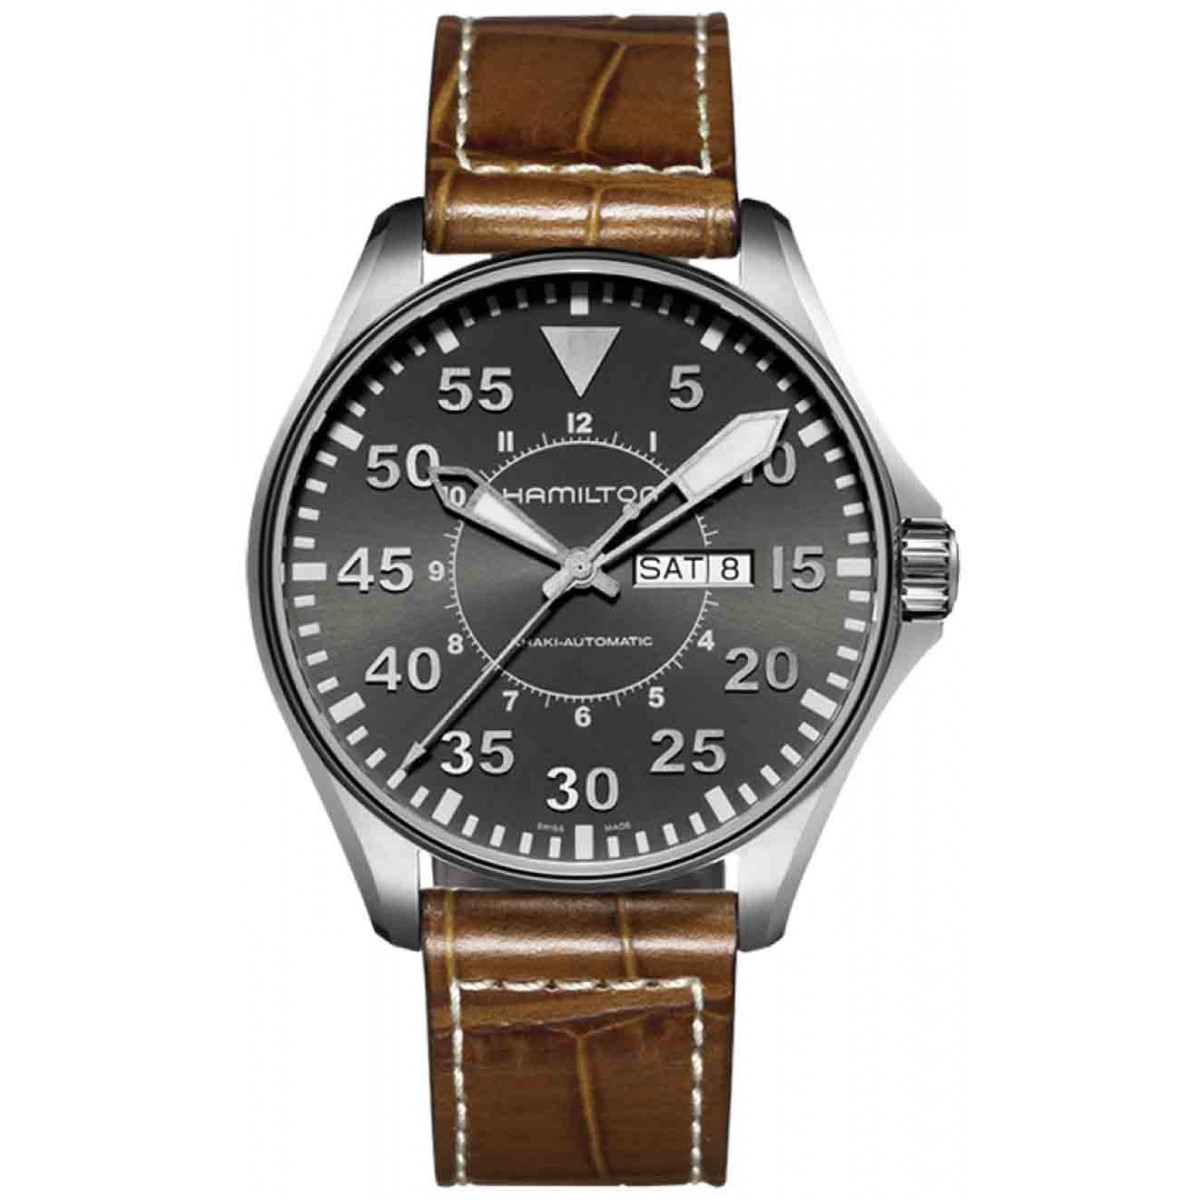 HAMILTON KHAKI AVIATION PILOT AUTO 200 M - ∅46 mm, Esfera gris, brazalete de piel marrón